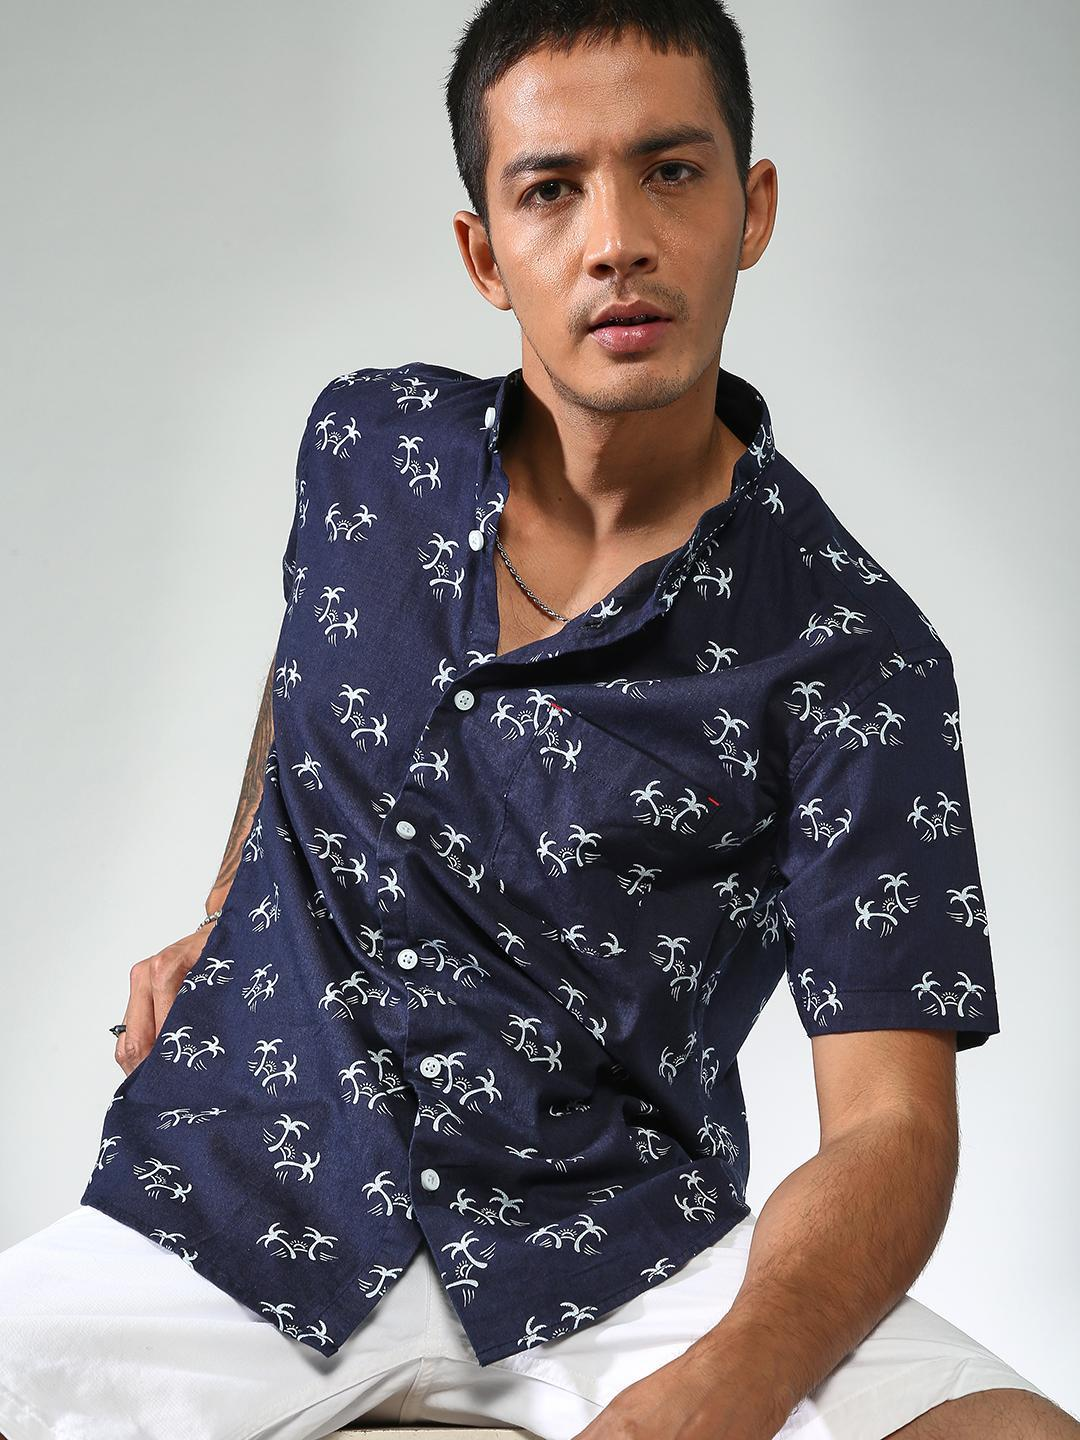 AMON Black All Over Printed Slim Fit Shirt 1